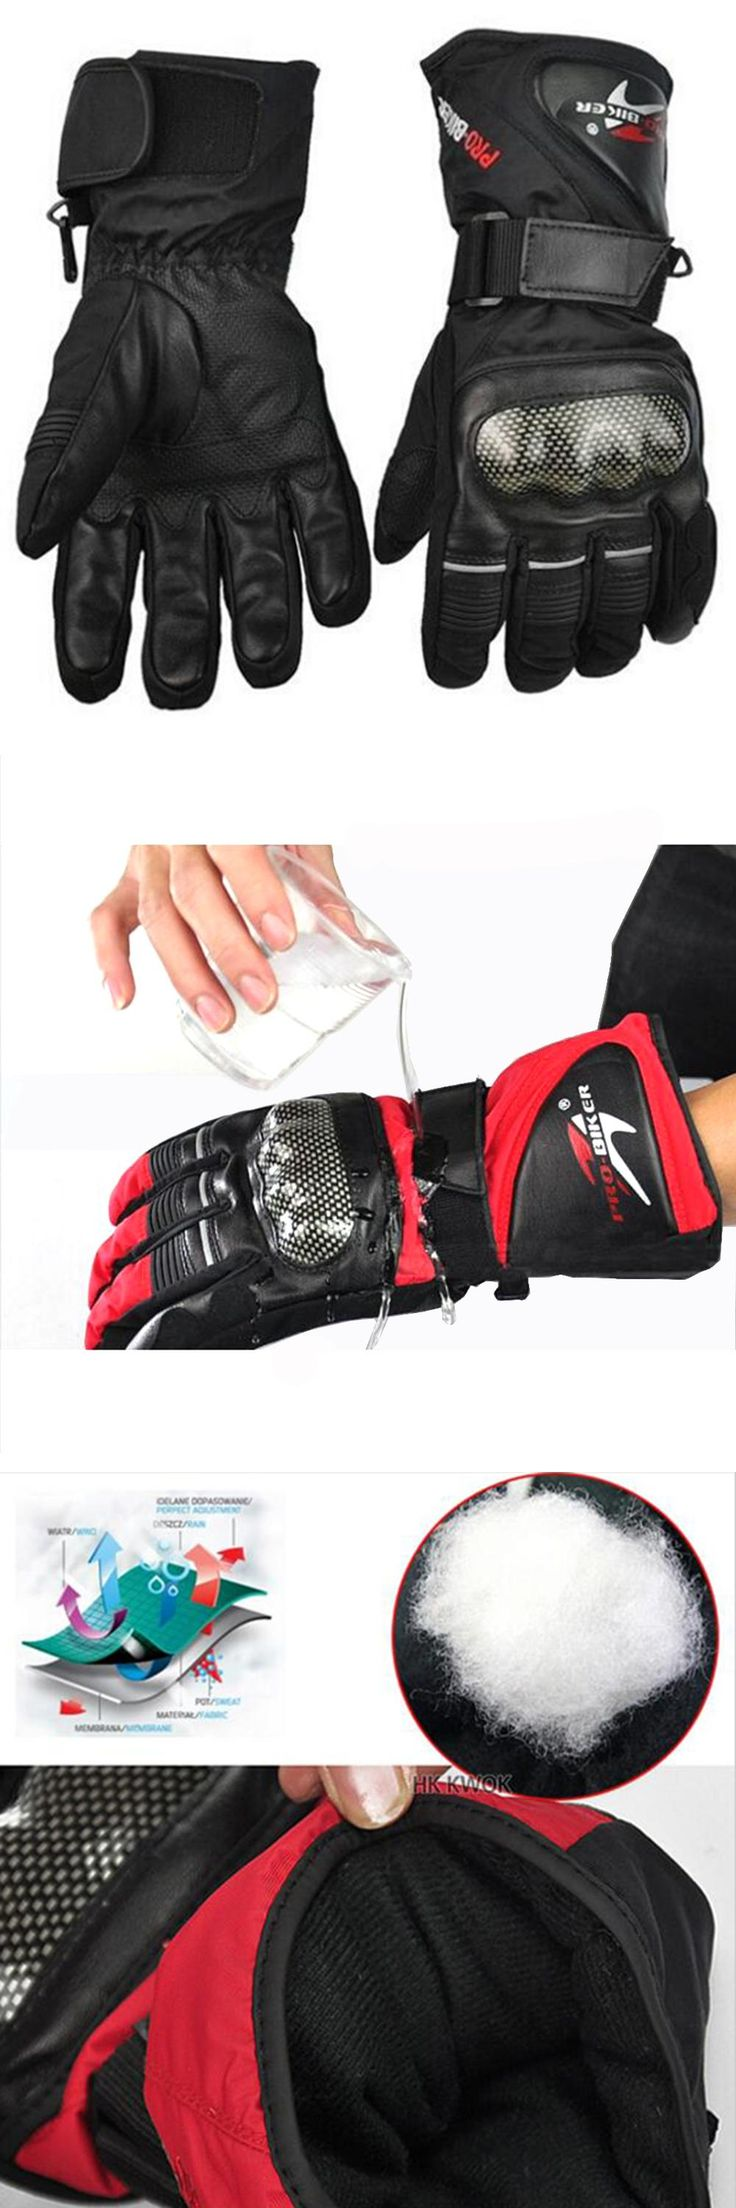 Motorcycle gloves smell -  Visit To Buy Leather Gloves Motorbike Motorcycle Gloves Winter Waterproof Windproof Protective Gear Sports